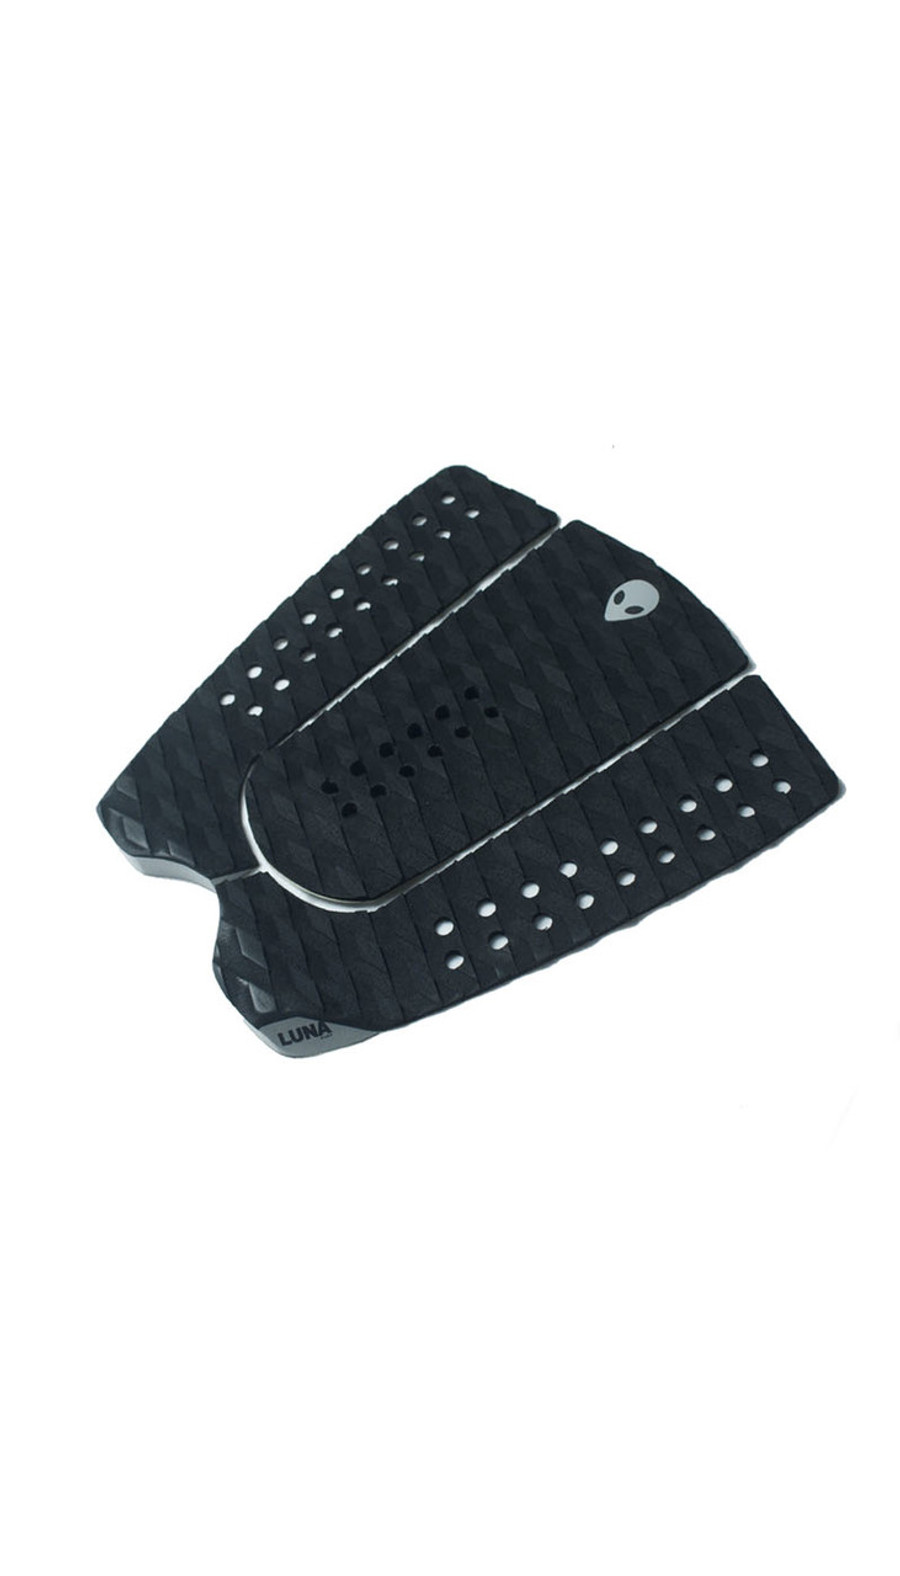 Lunasurf tail pad surf black